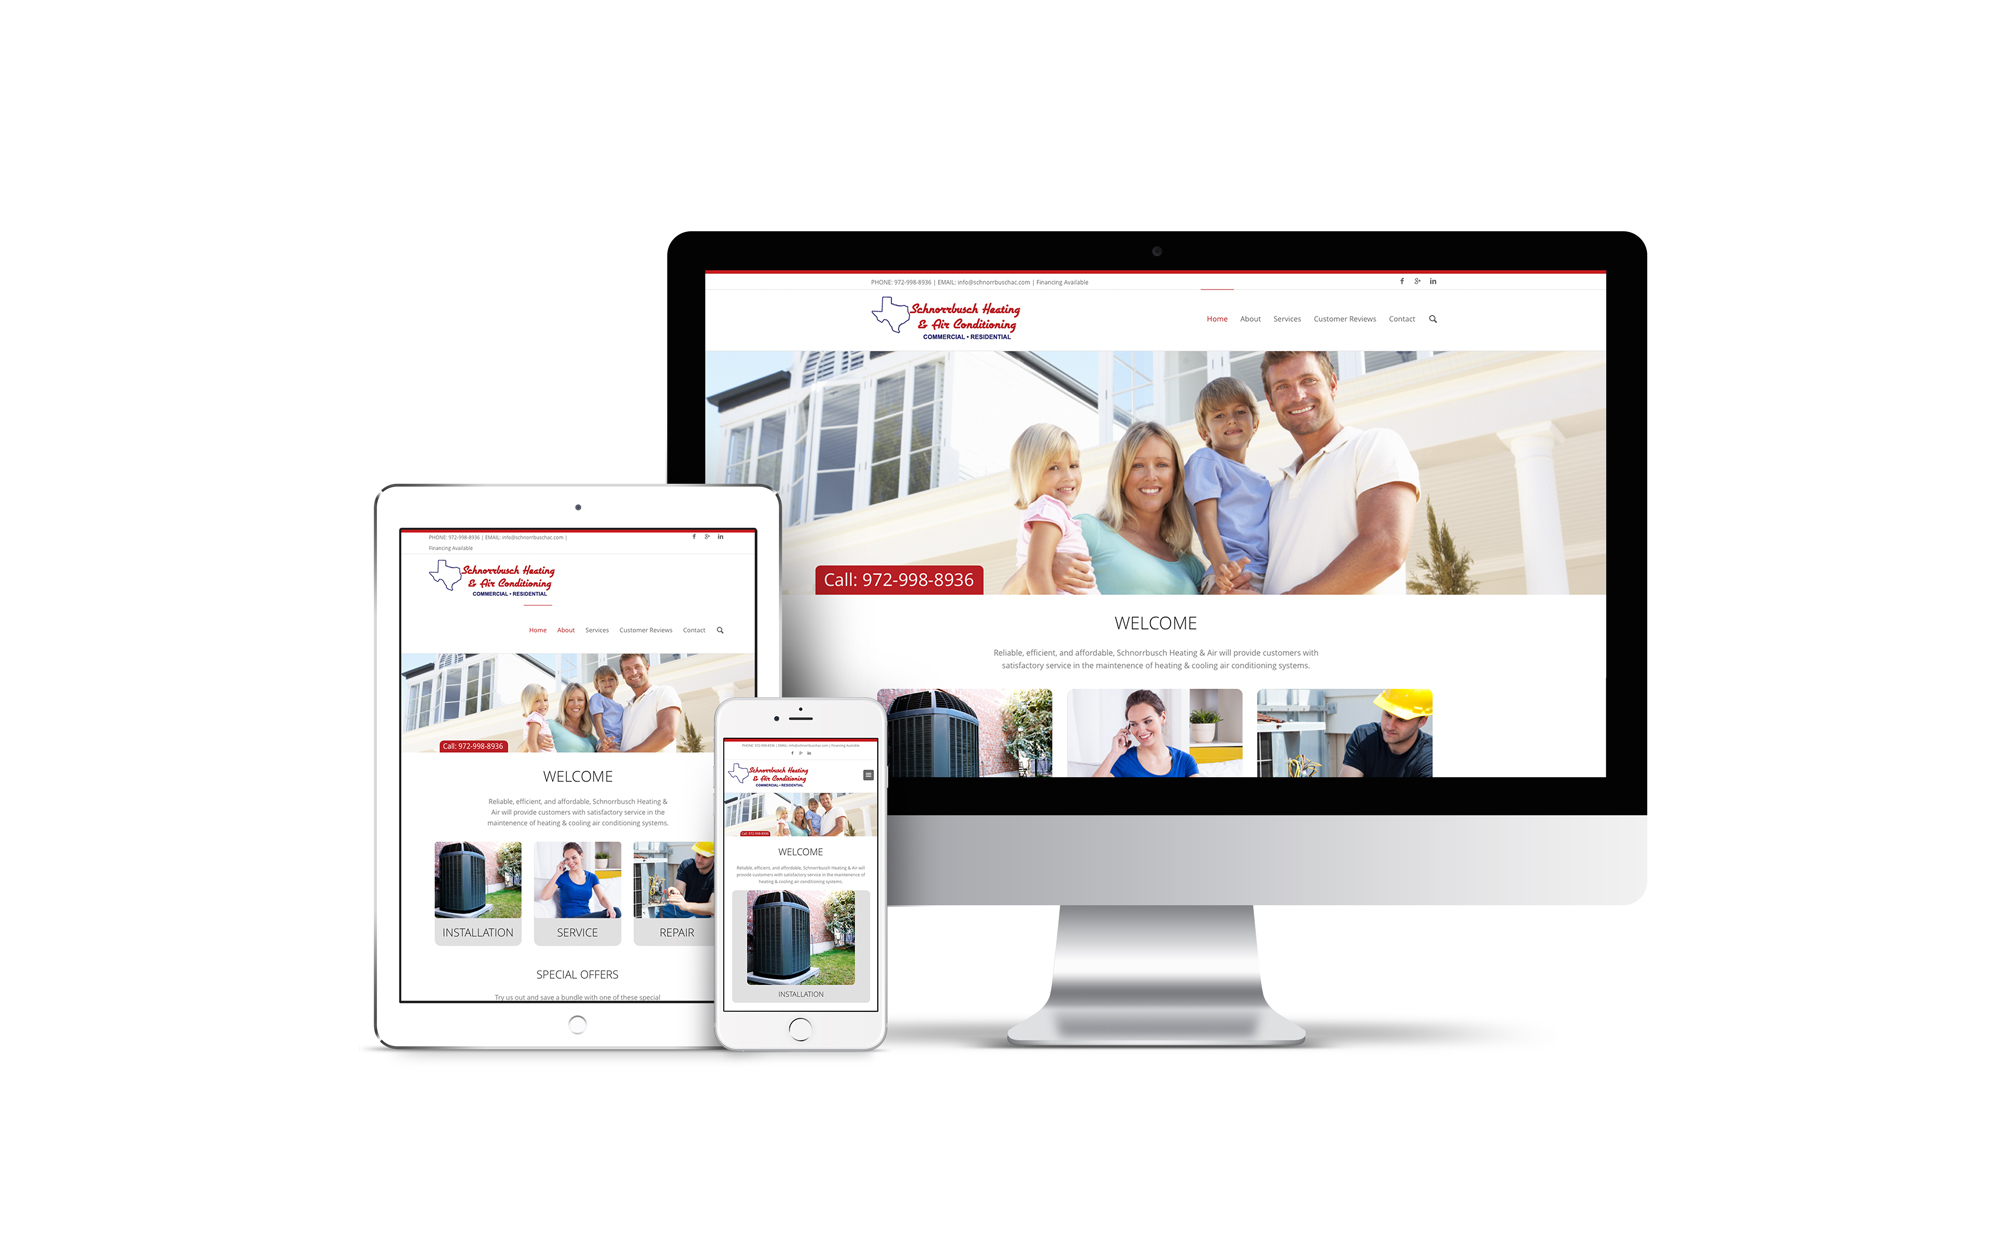 A custom designed website displayed on multiple sized screens with and HVAC company on it.